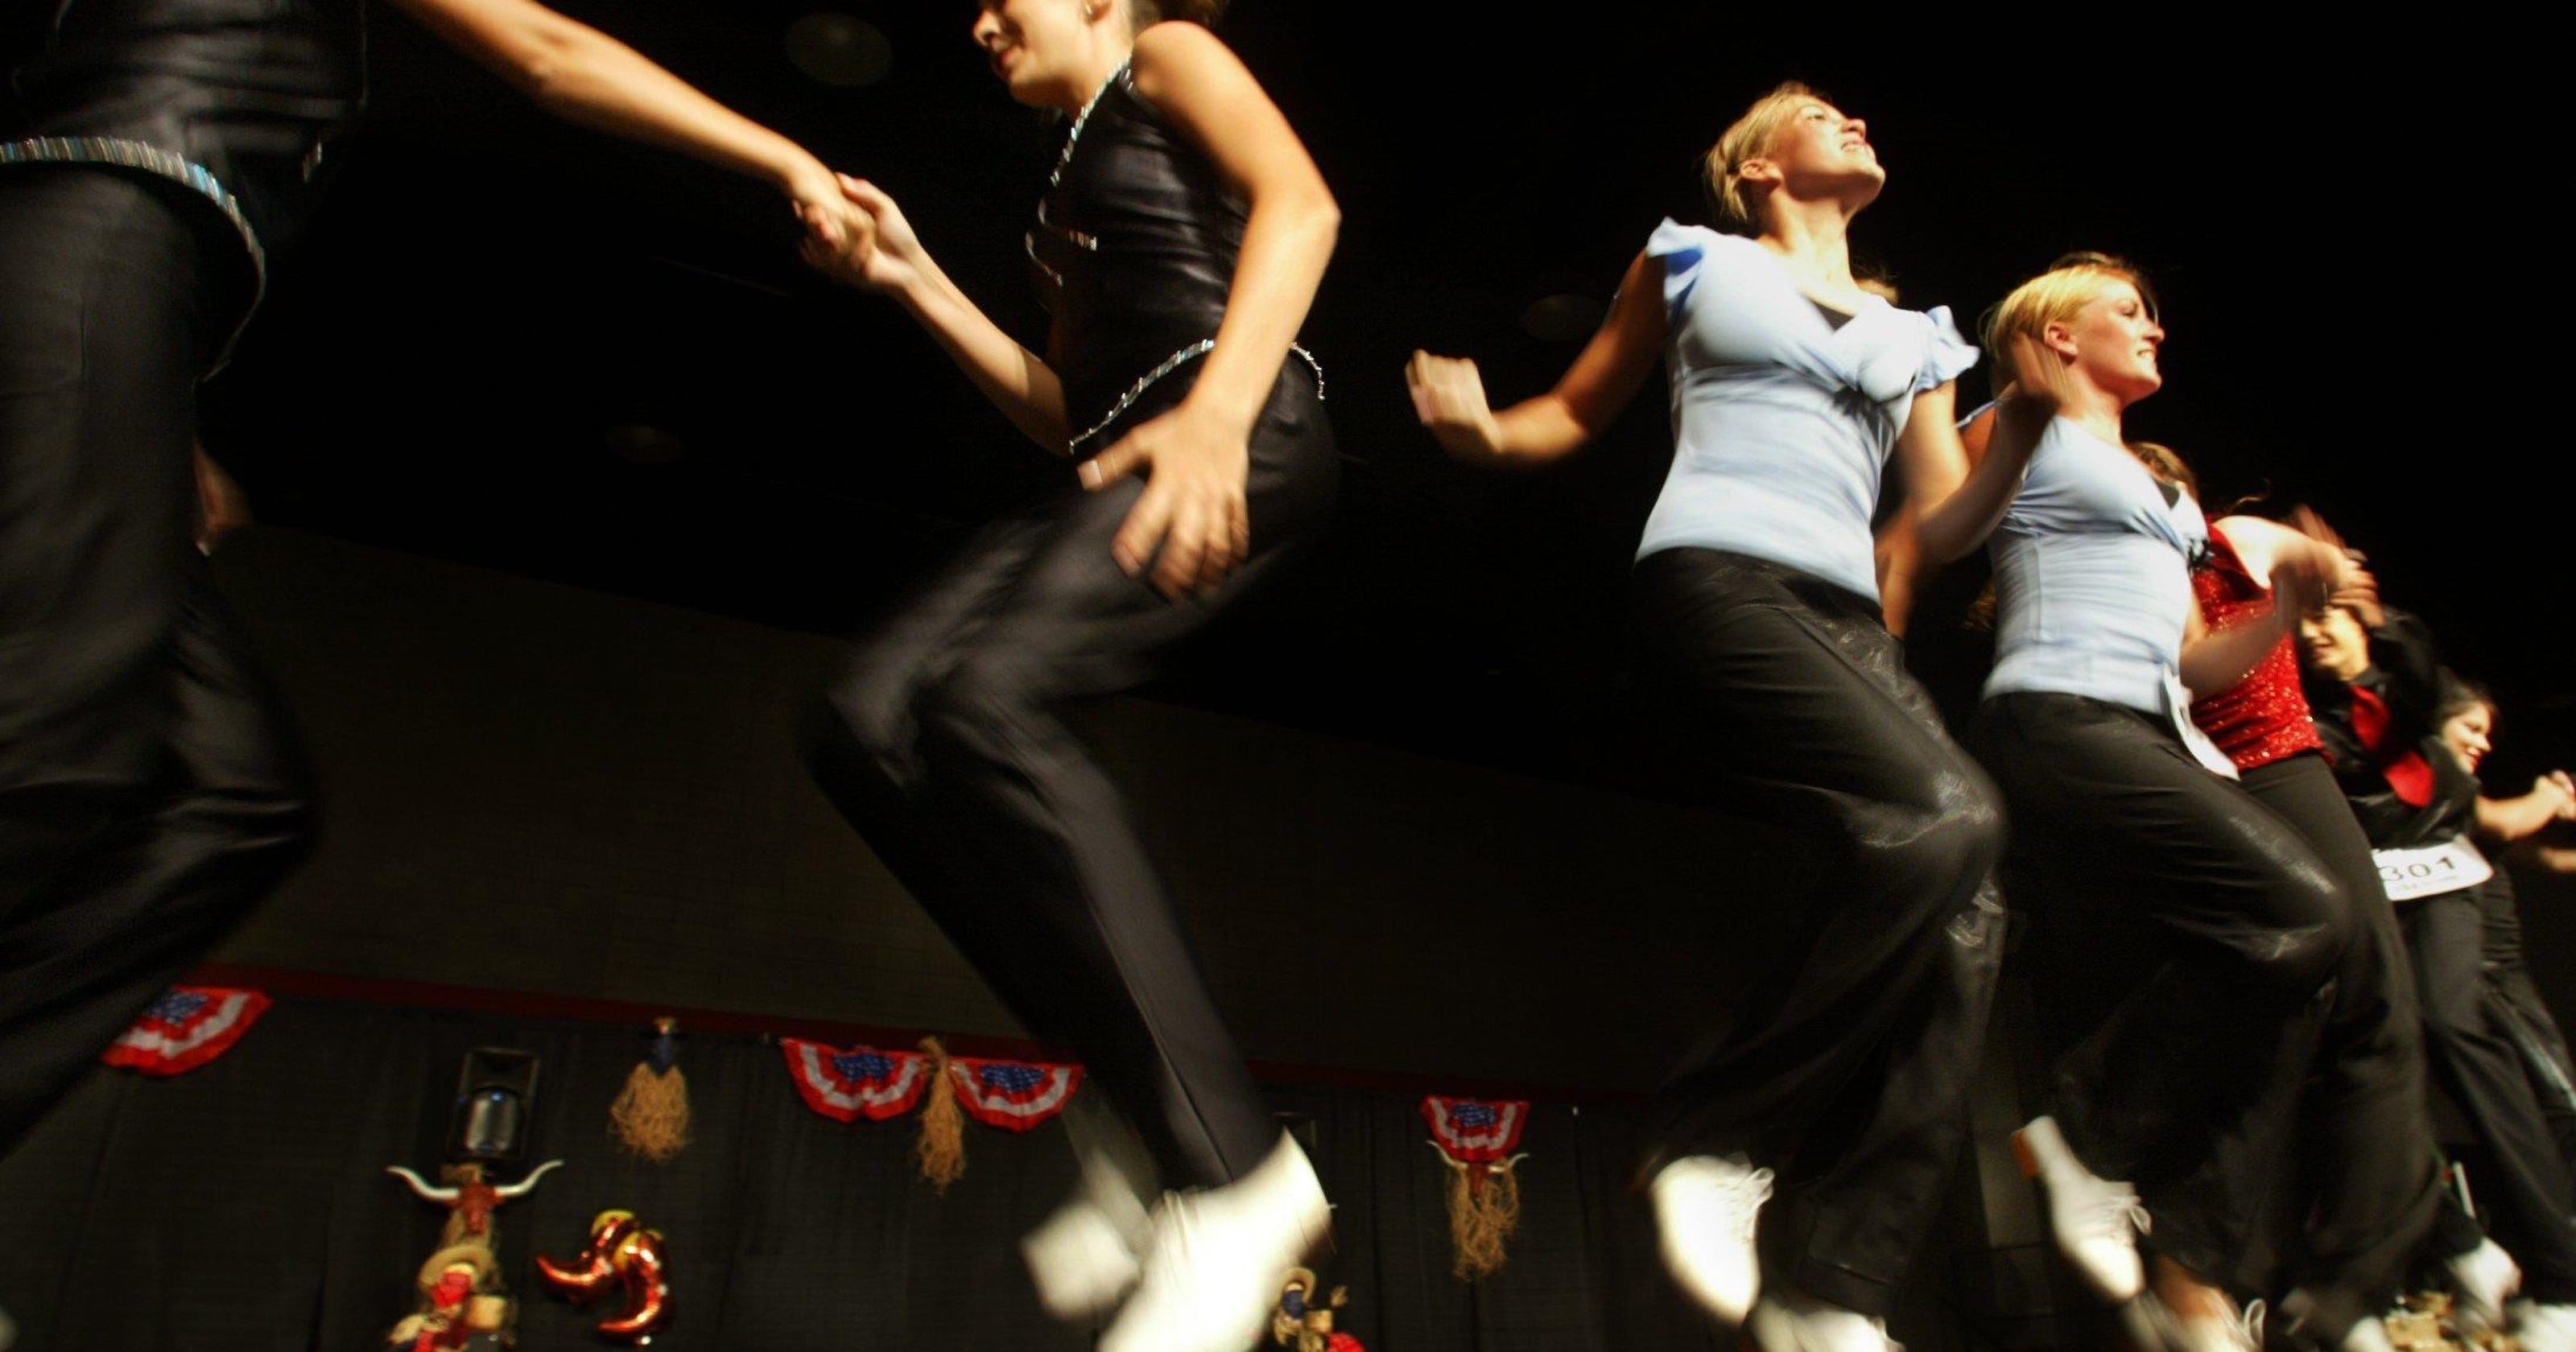 Get your toes tapping at weekly clogging classes